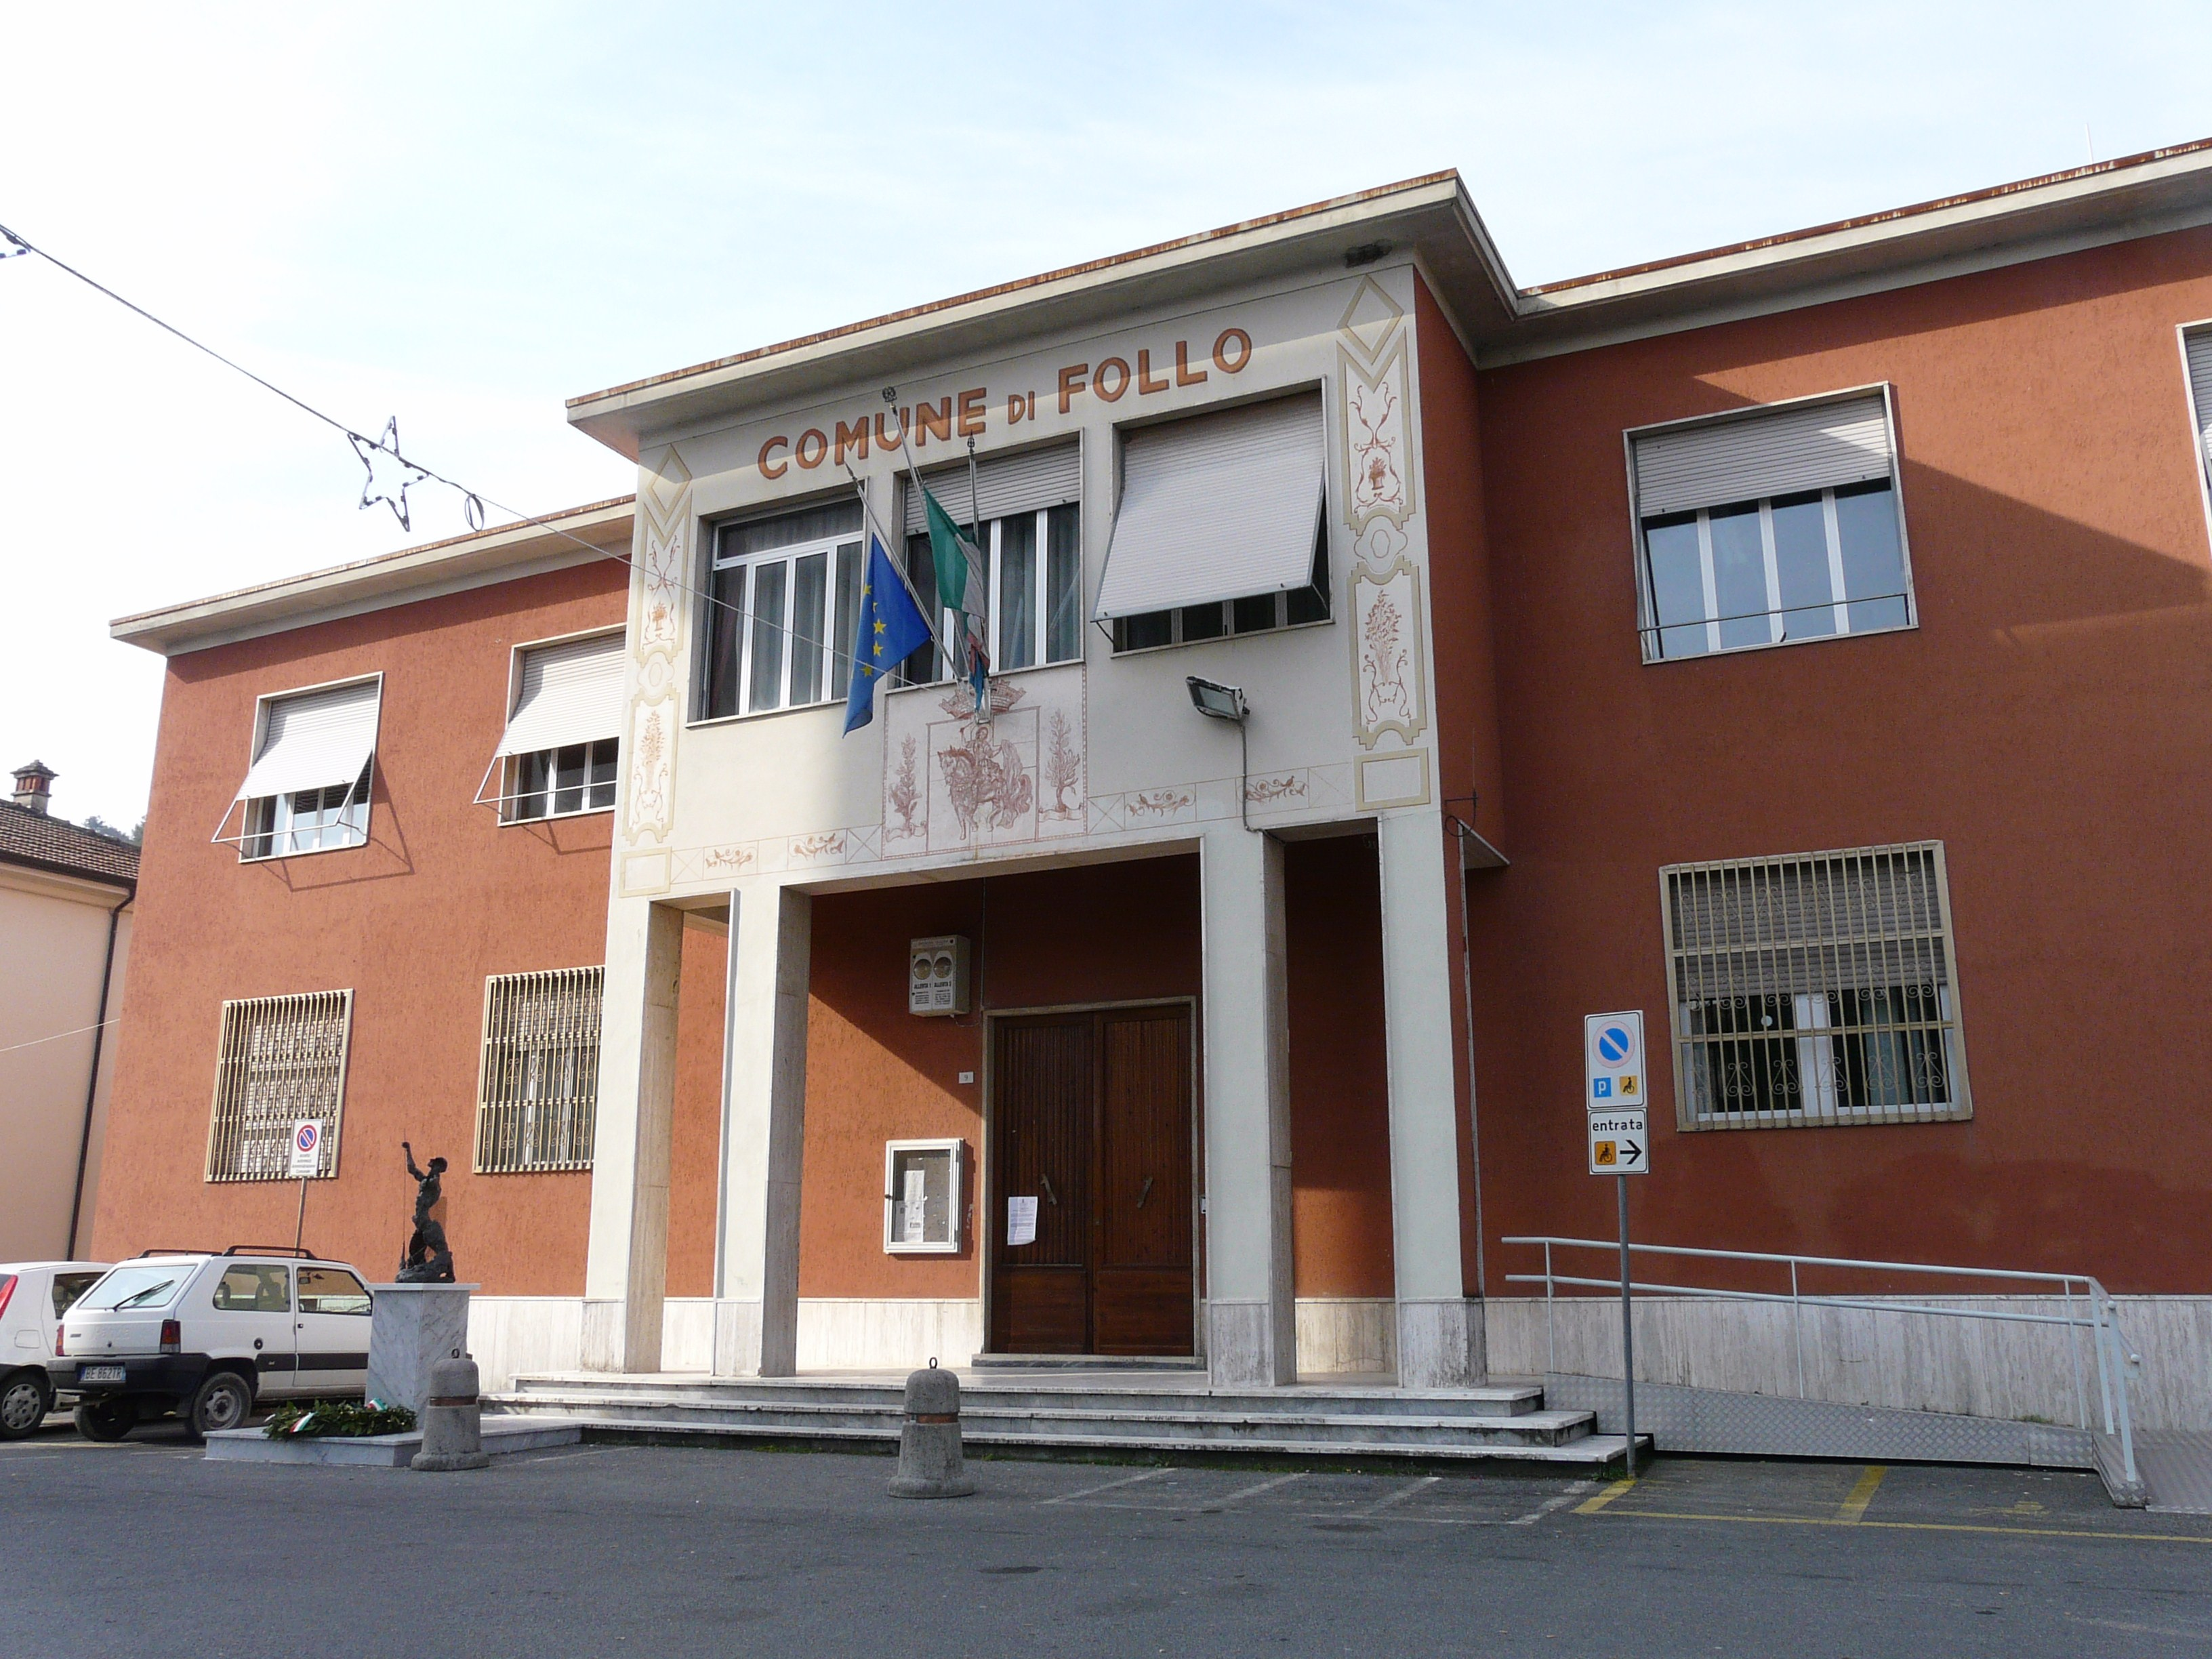 Description Follo-municipio.jpg